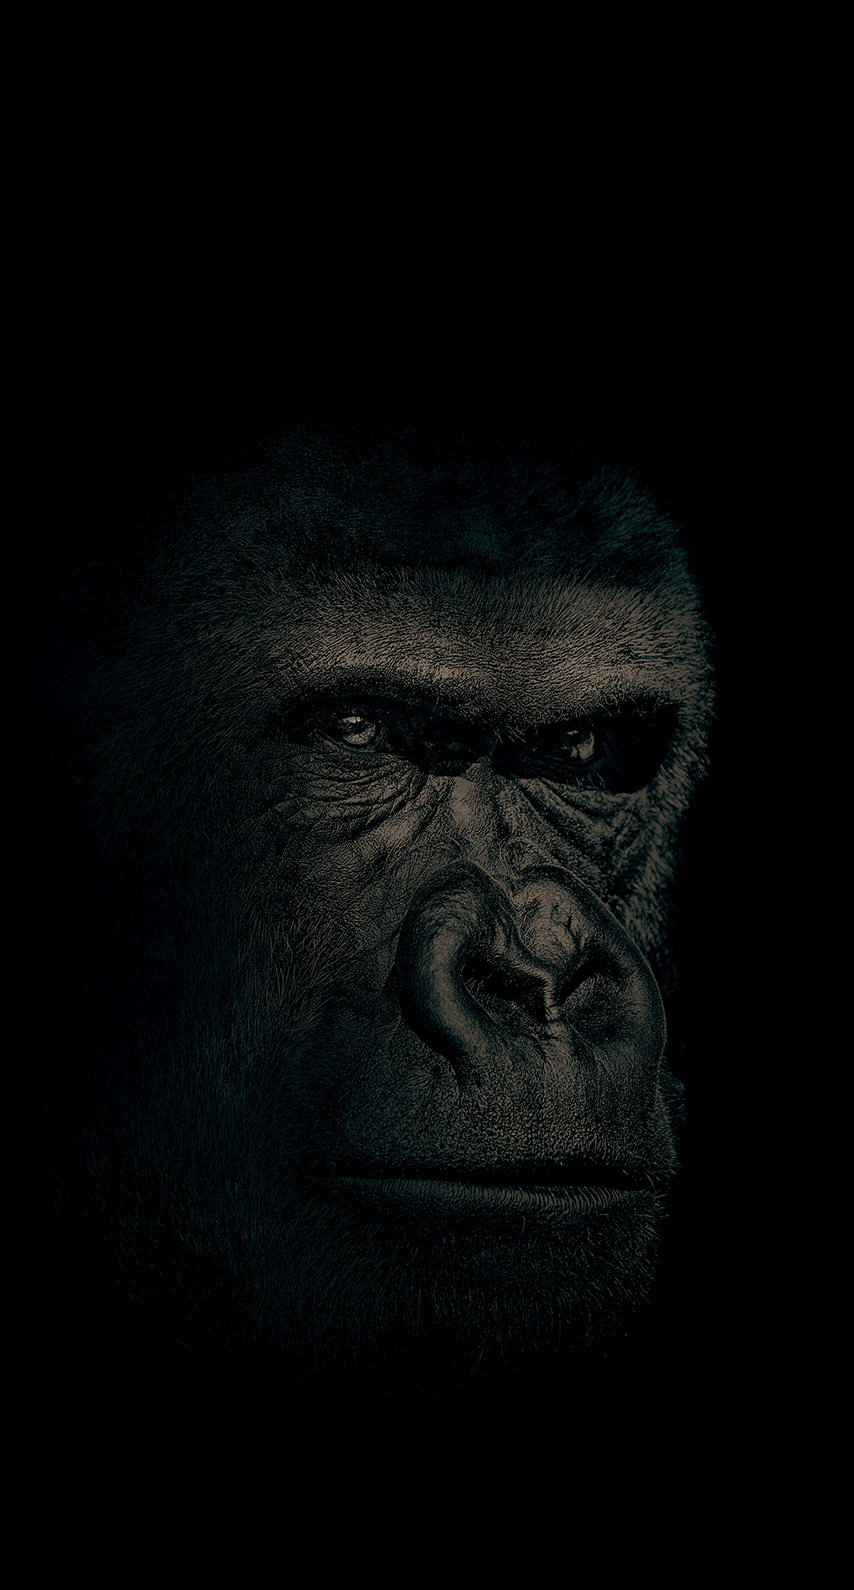 gorilla, no person